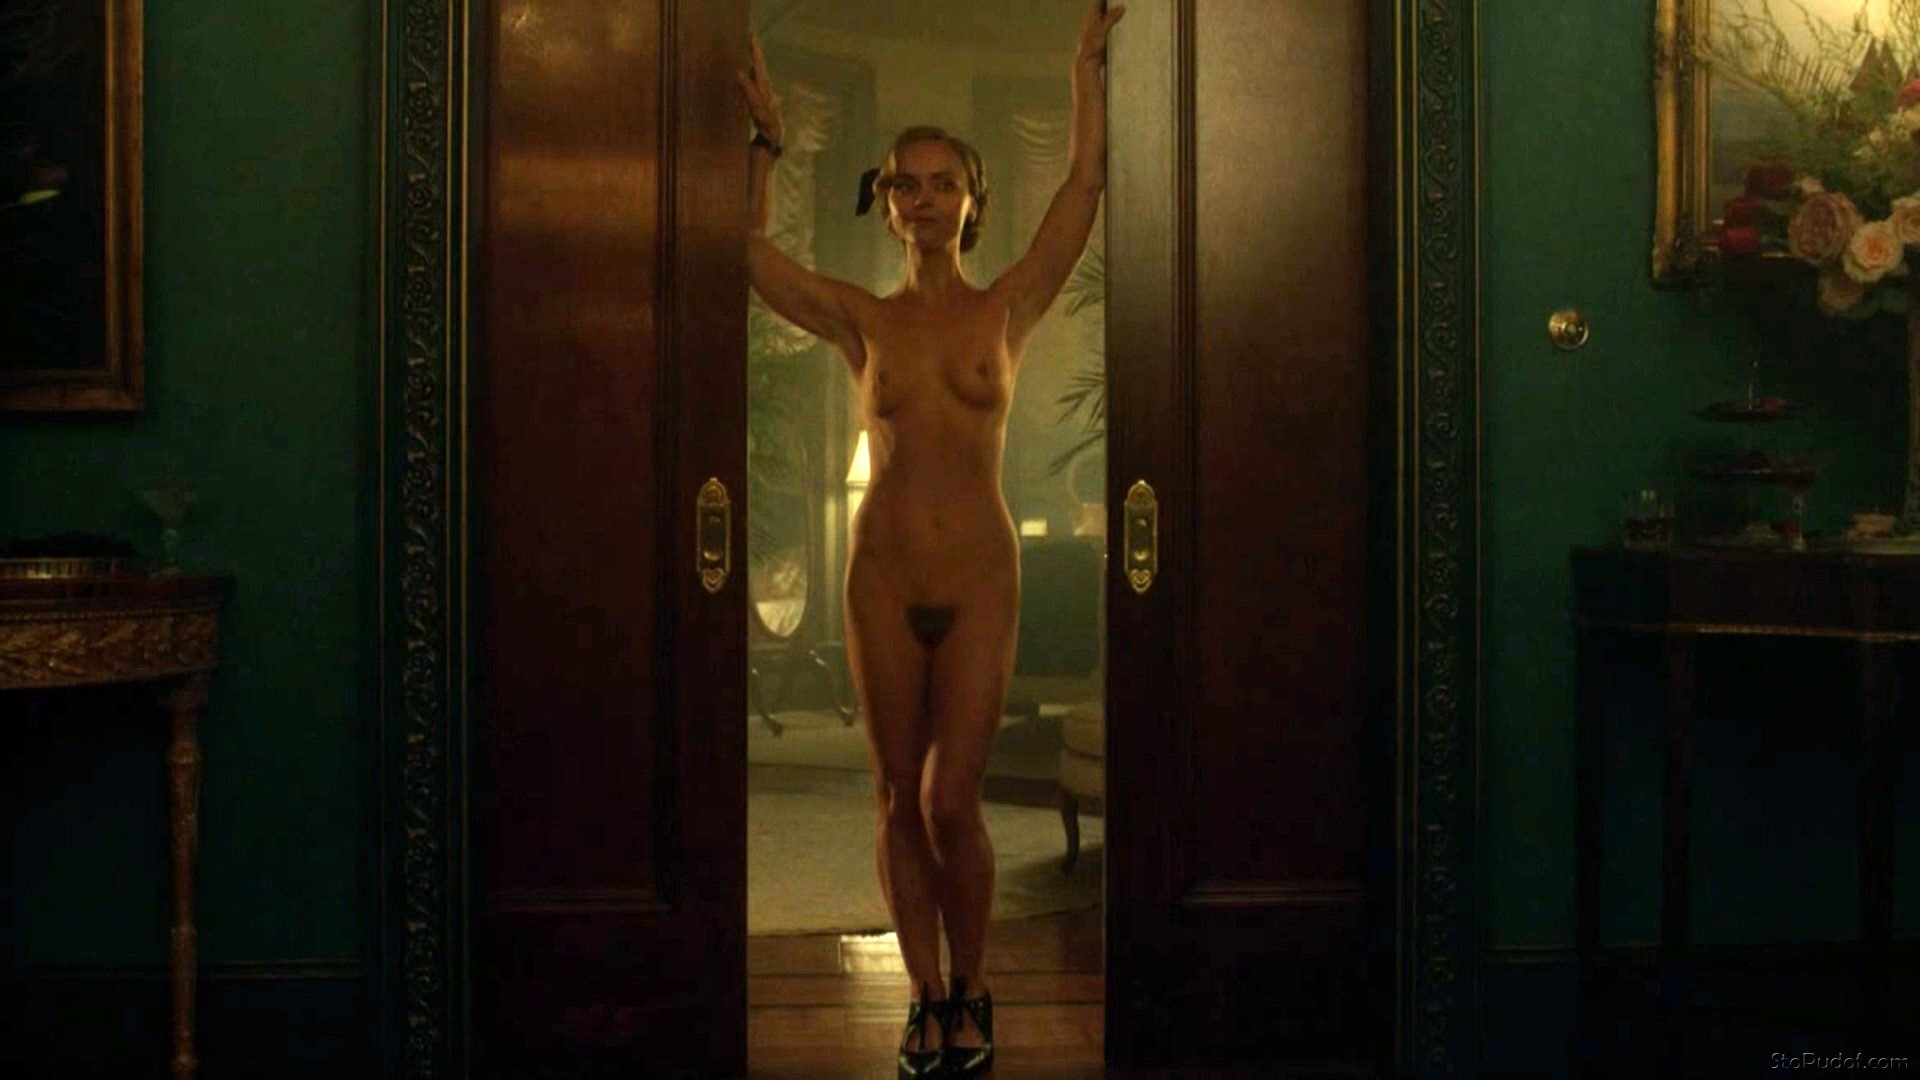 Christina Ricci naked photo online - UkPhotoSafari